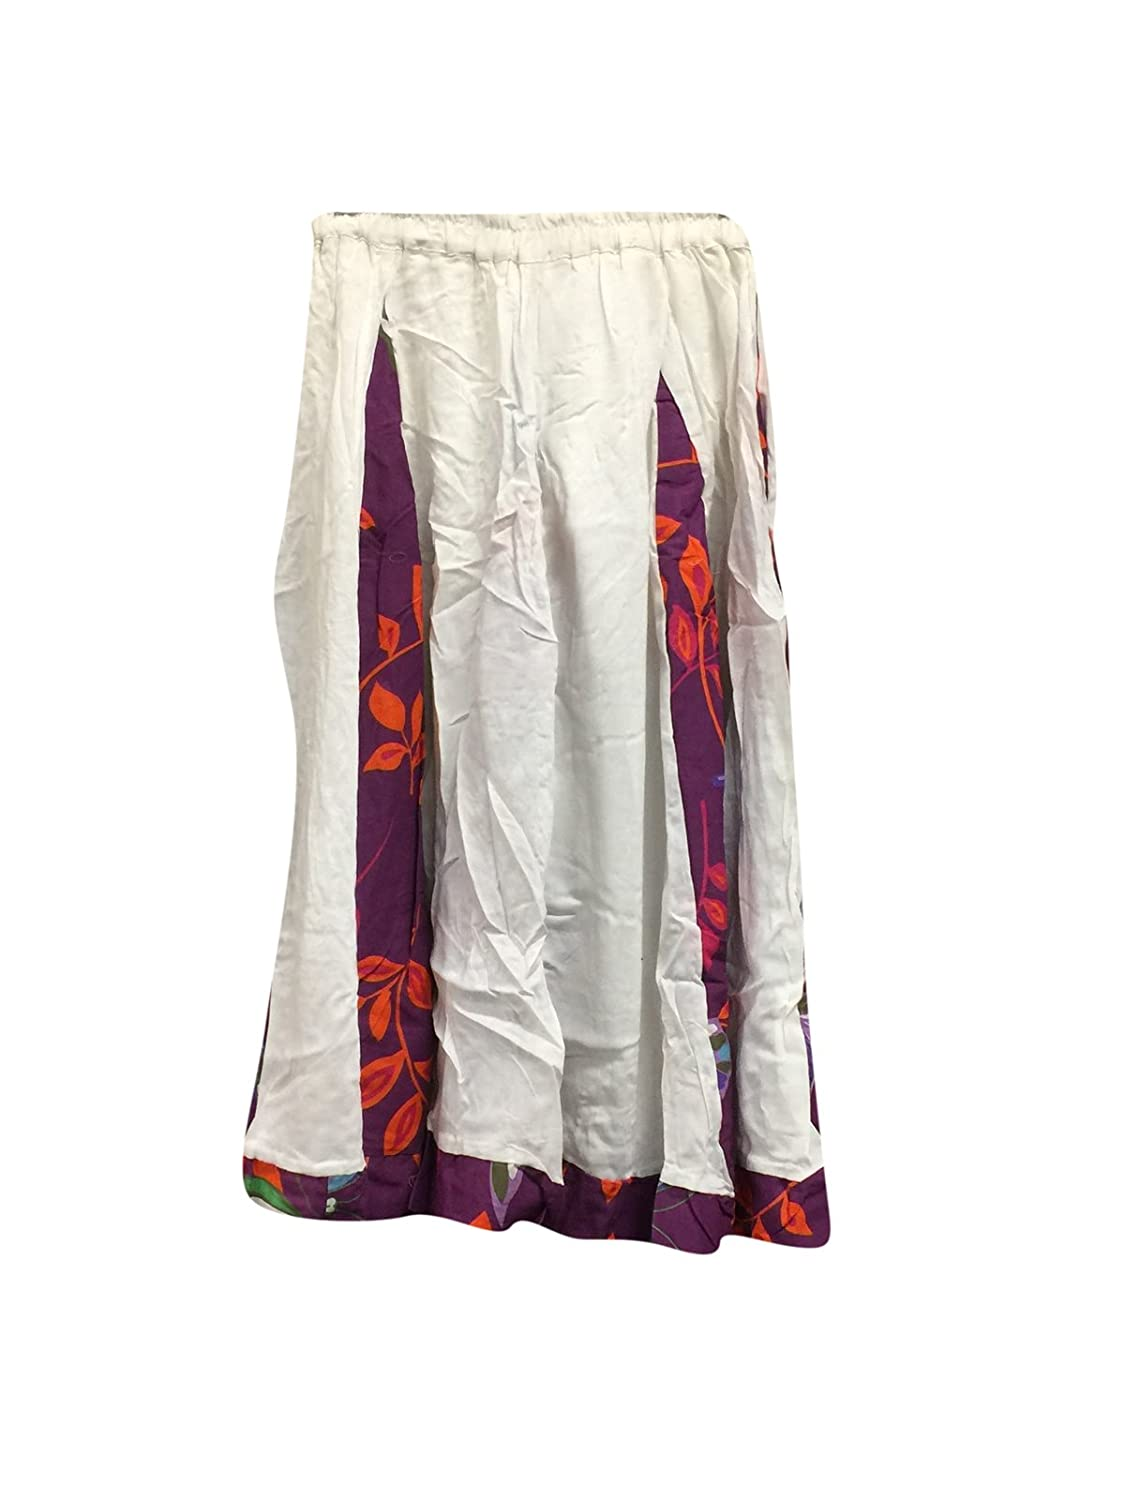 Mogul Interior Womens Retro Skirt White Bohemian Gyspy Flirty Mid Calf Skirts